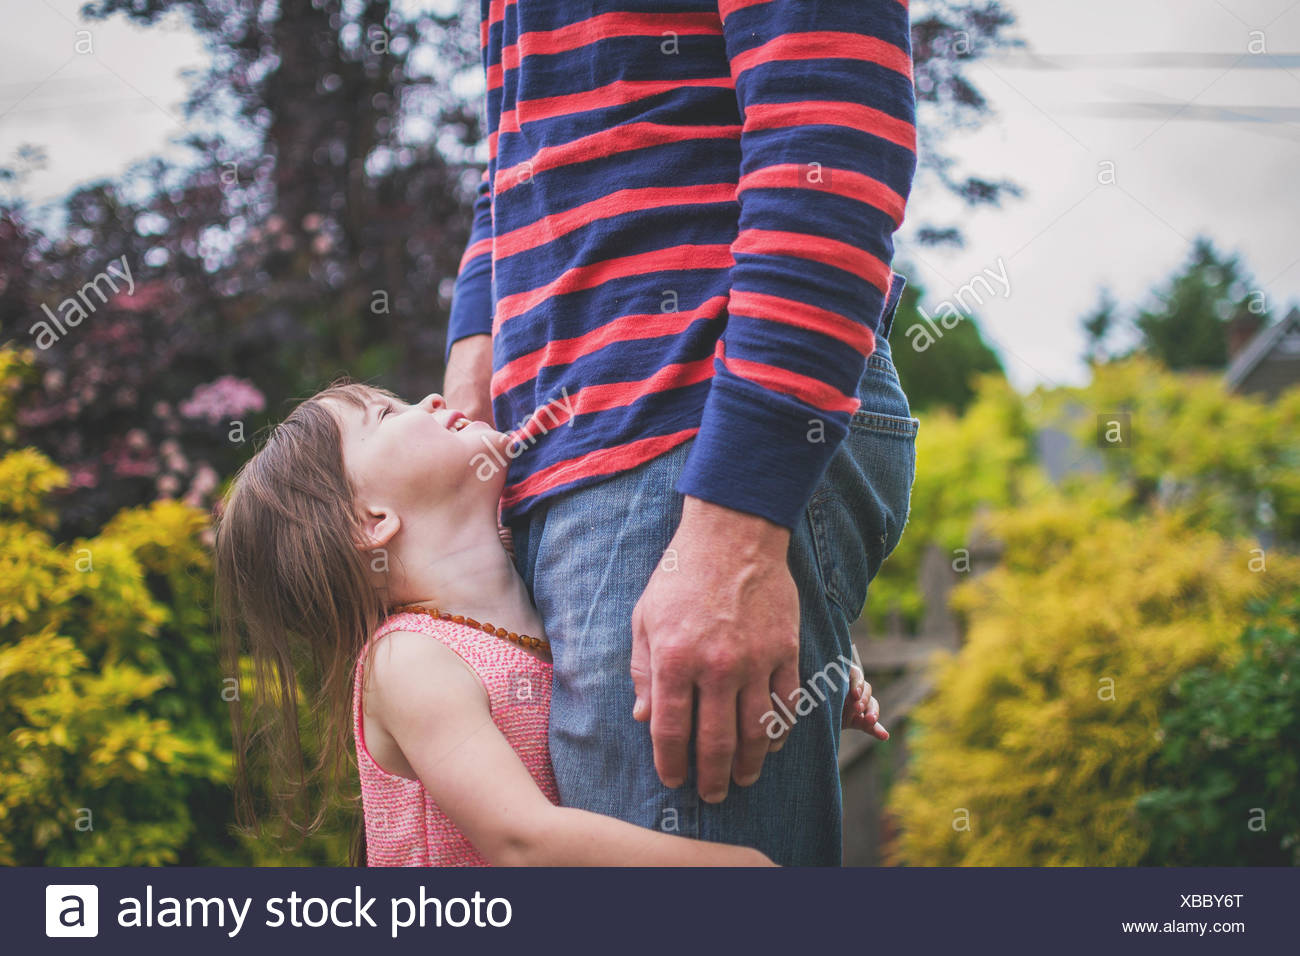 Daughter holding father's legs, looking up - Stock Image